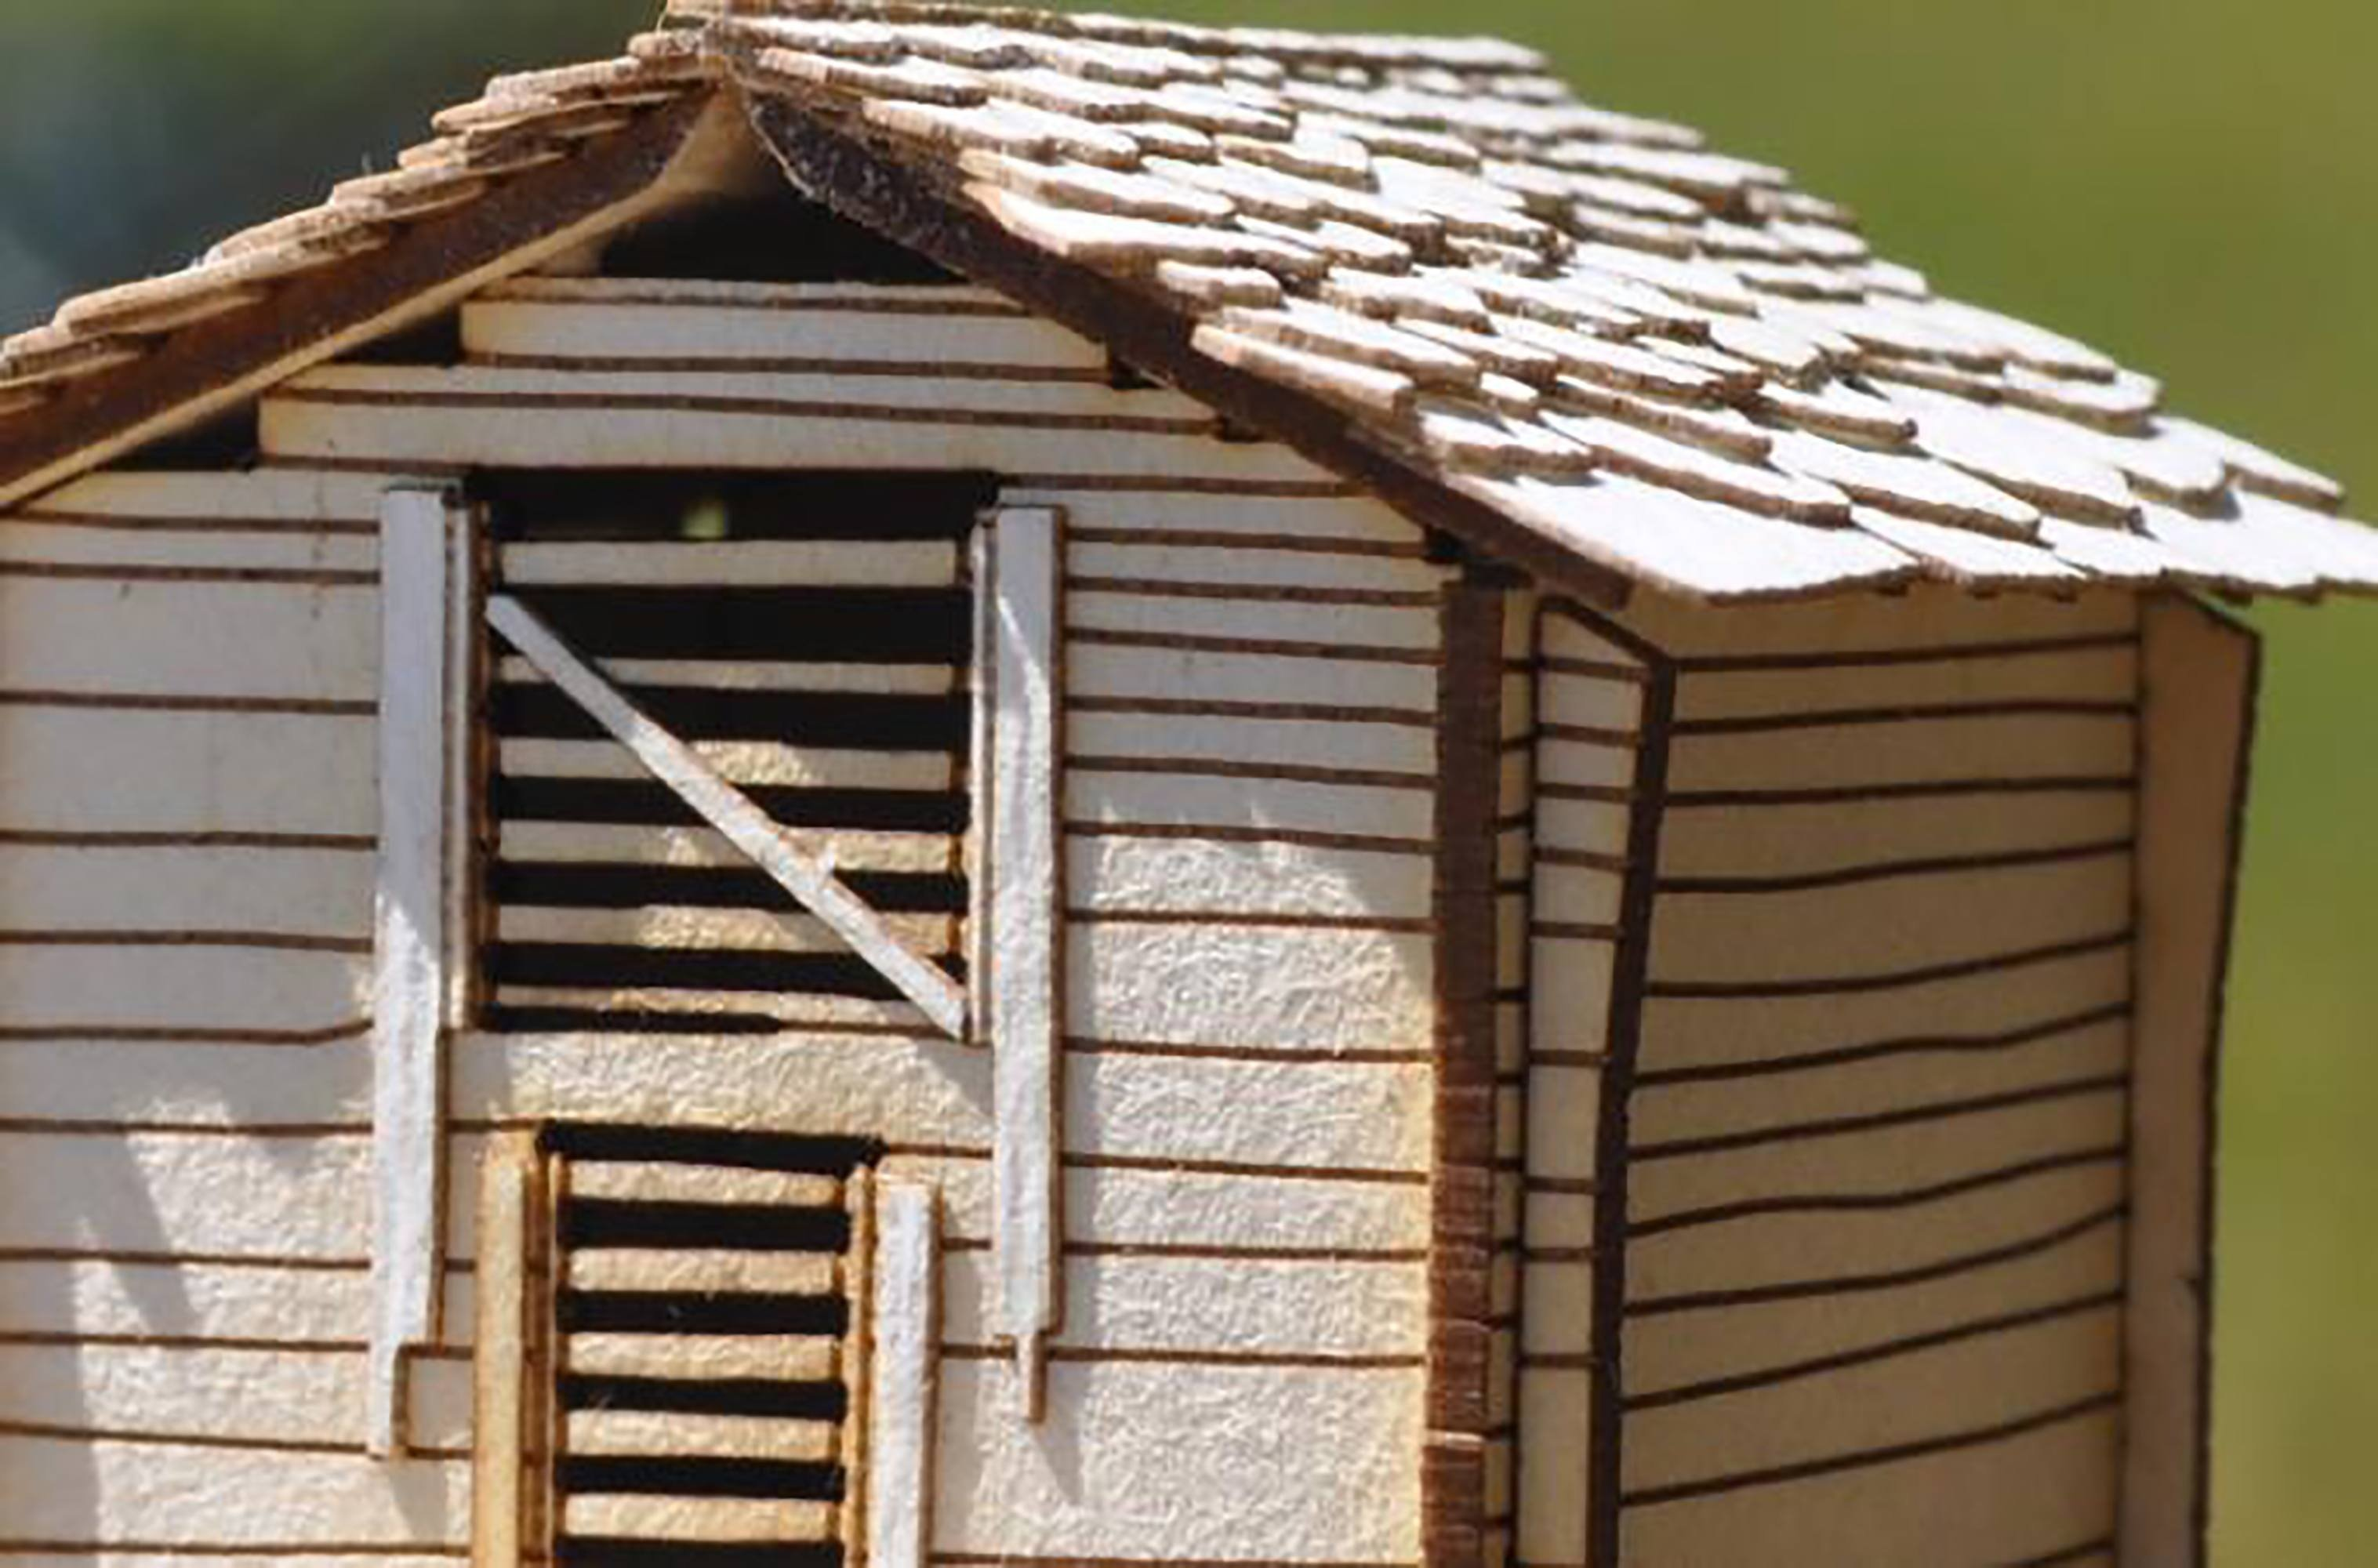 Laser etched scale model railroad shack